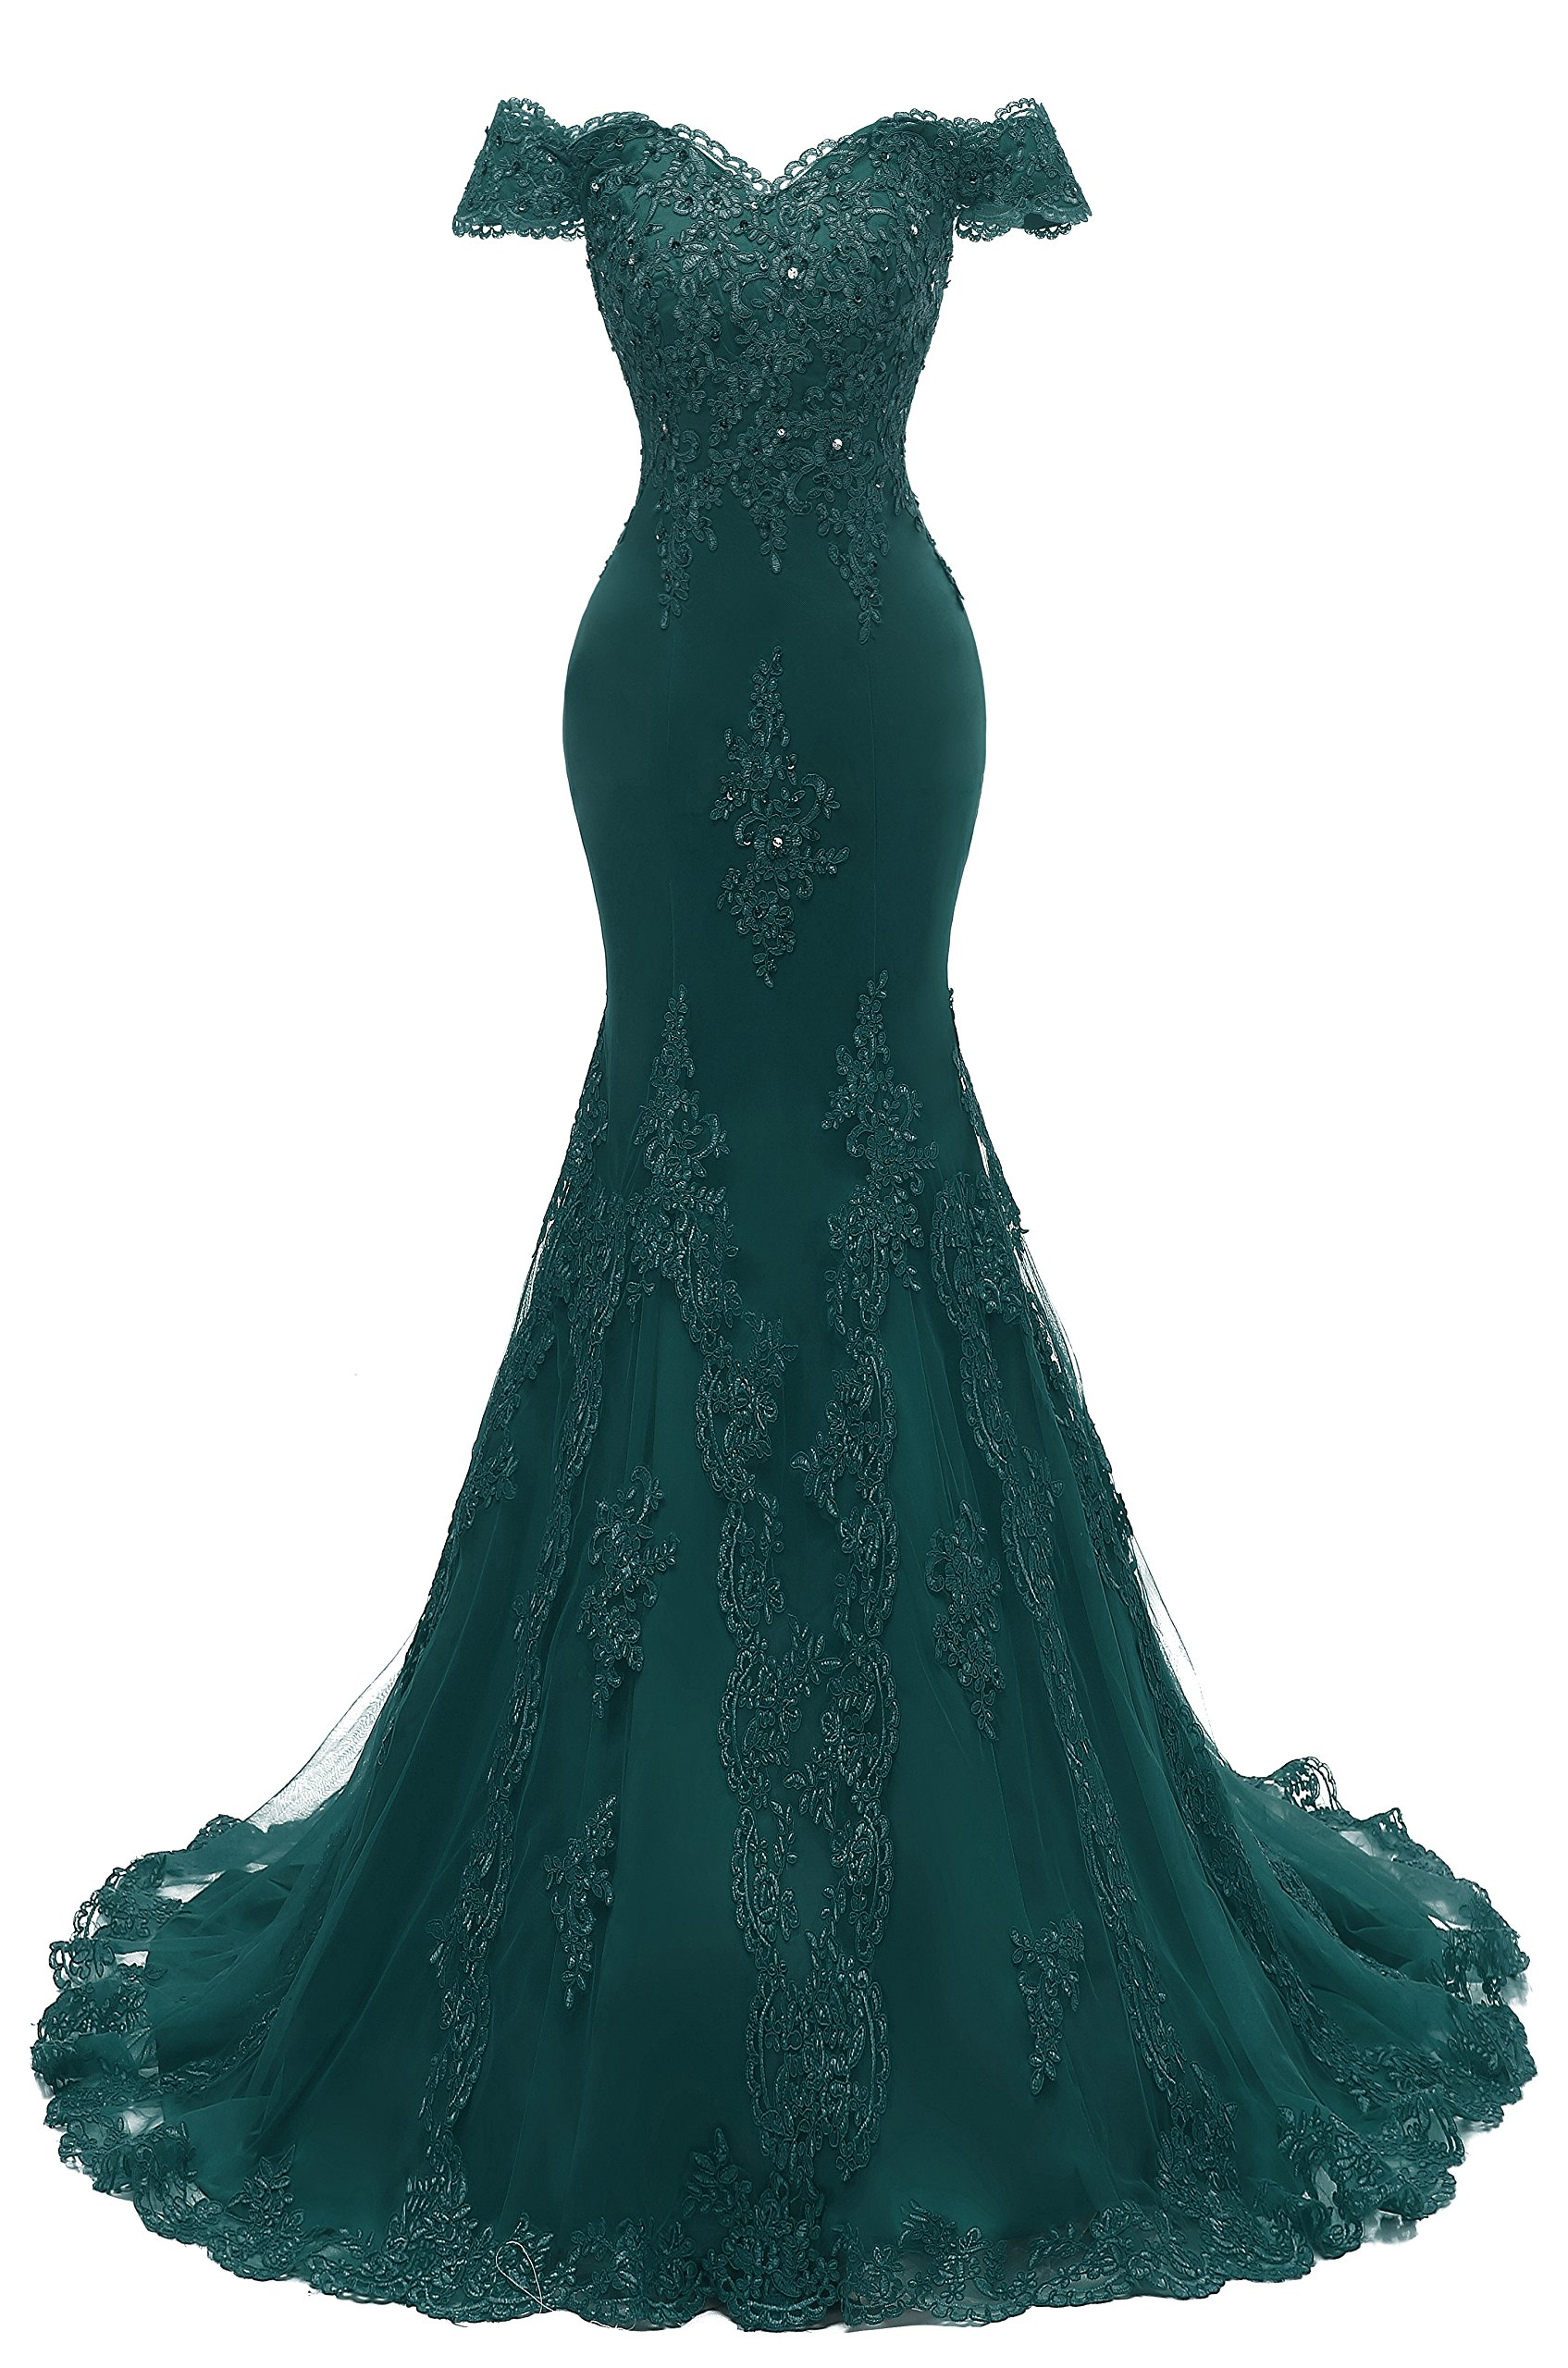 Teal Prom Dresses: Amazon.com